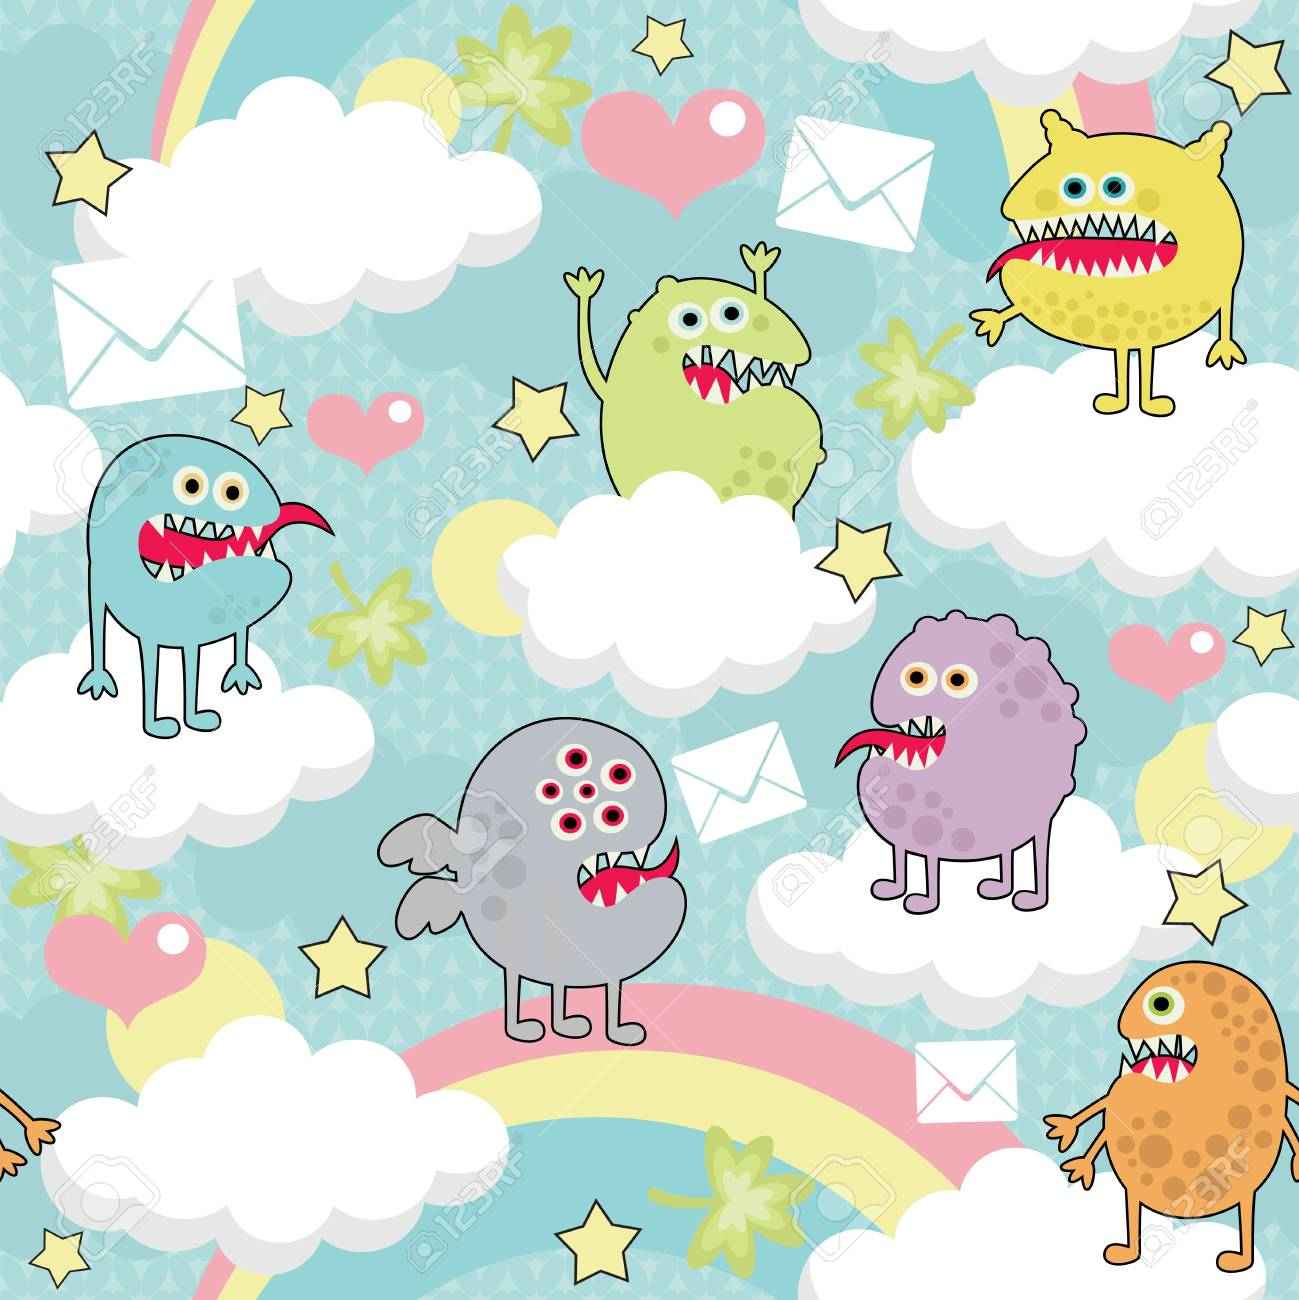 Cute monsters on clouds seamless texture with envelopes. Stock Vector - 14753482